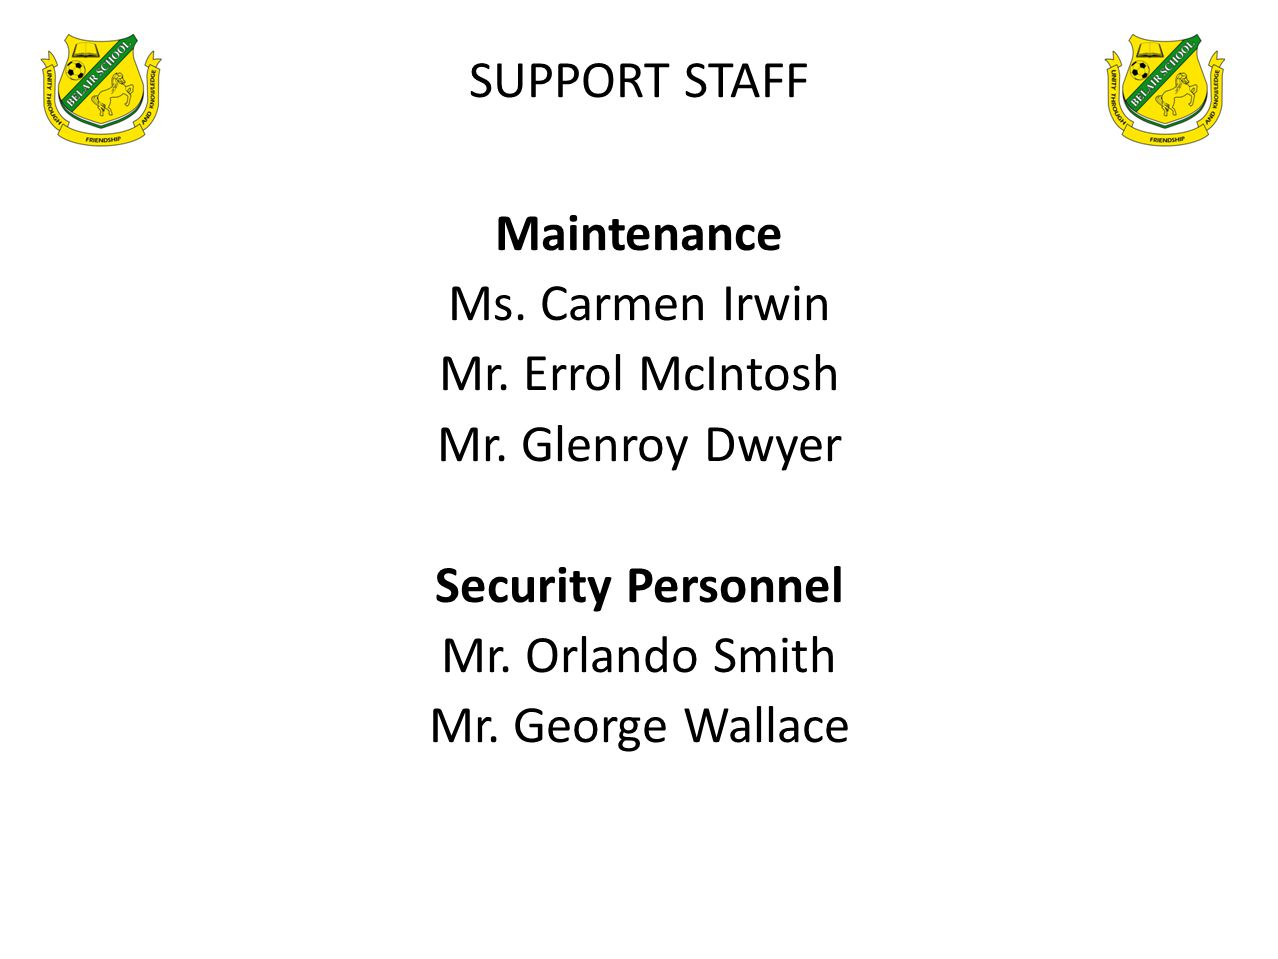 SUPPORT STAFF Maintenance. Ms. Carmen Irwin. Mr. Errol McIntosh. Mr. Glenroy Dwyer. Security Personnel.